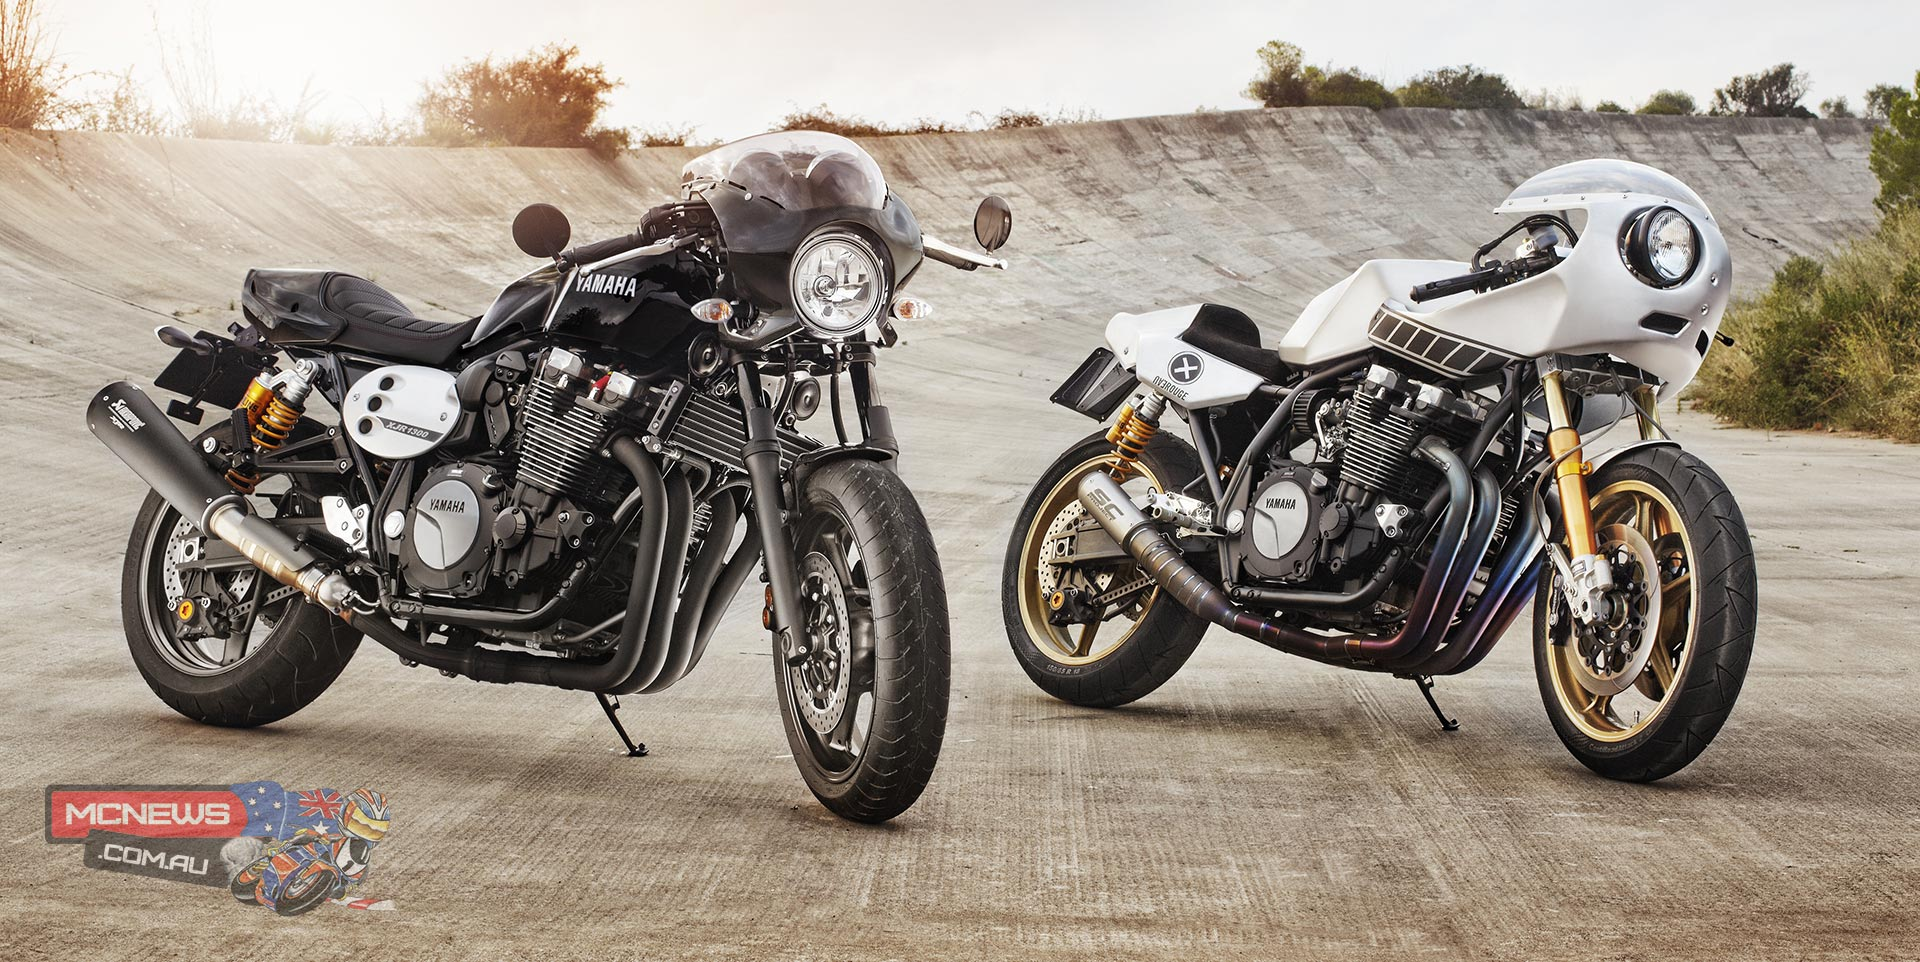 Yamaha XJR1300 Racer and customised XJR1300 Racer